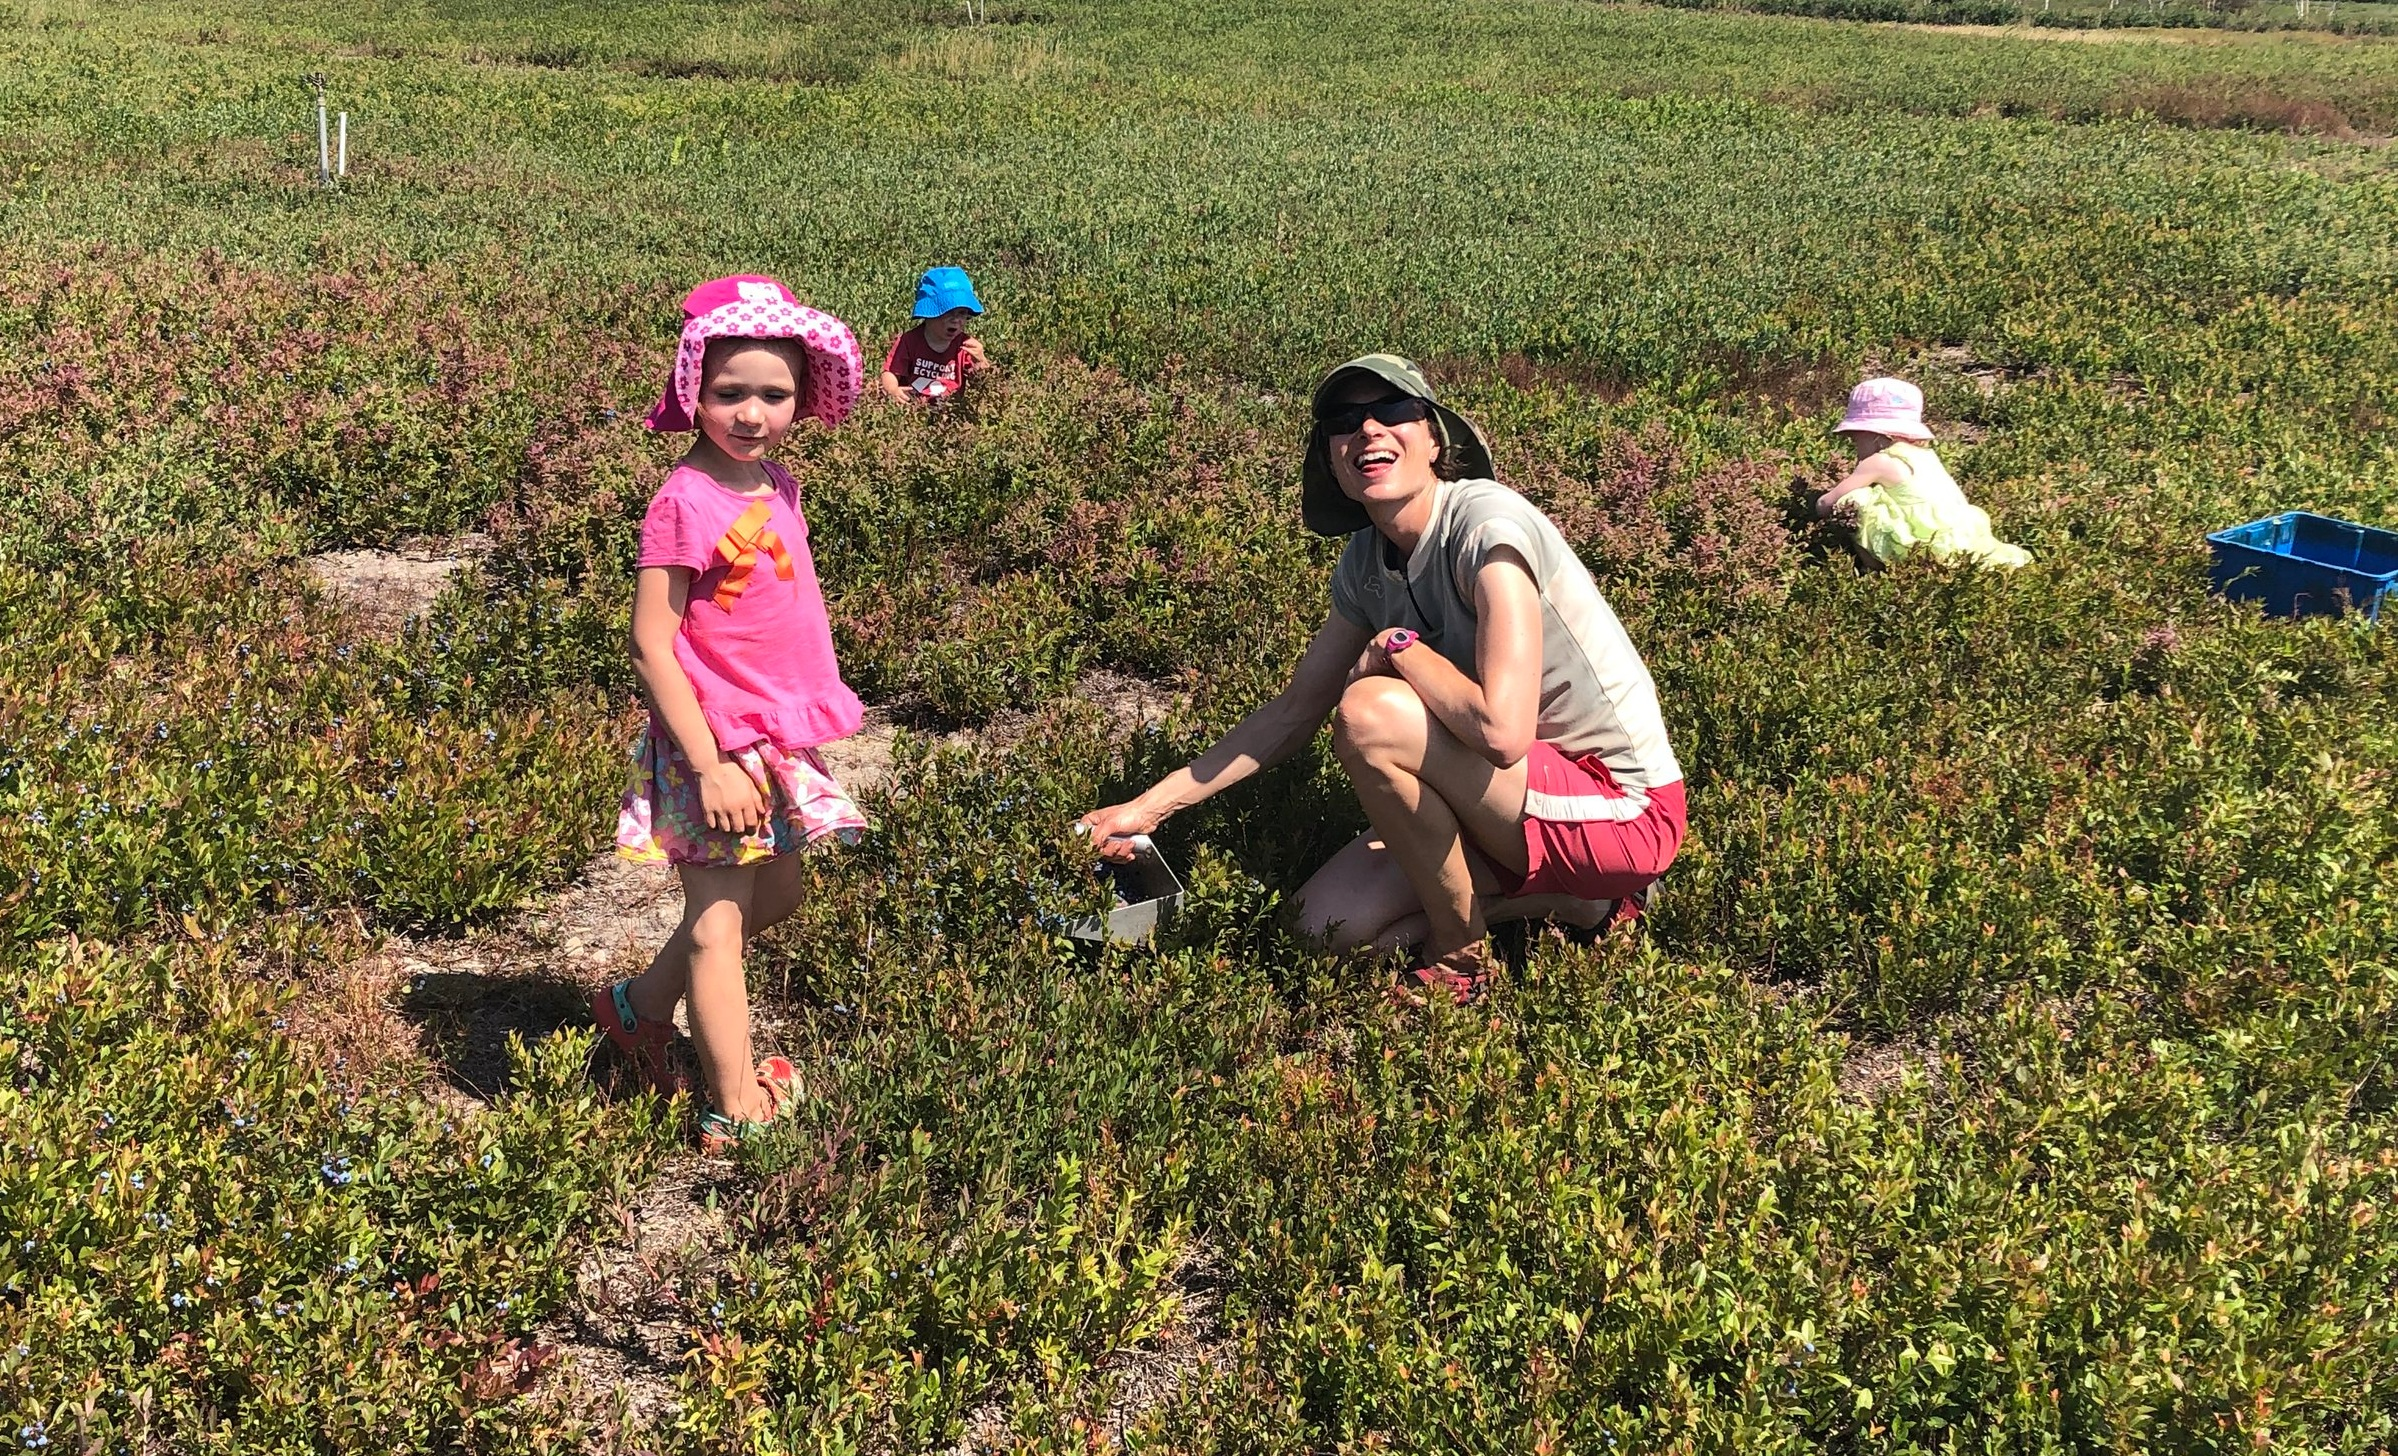 We all enjoyed picking blueberries but our one year especially loved sitting in the blueberry patch will handfuls of berries within reach.